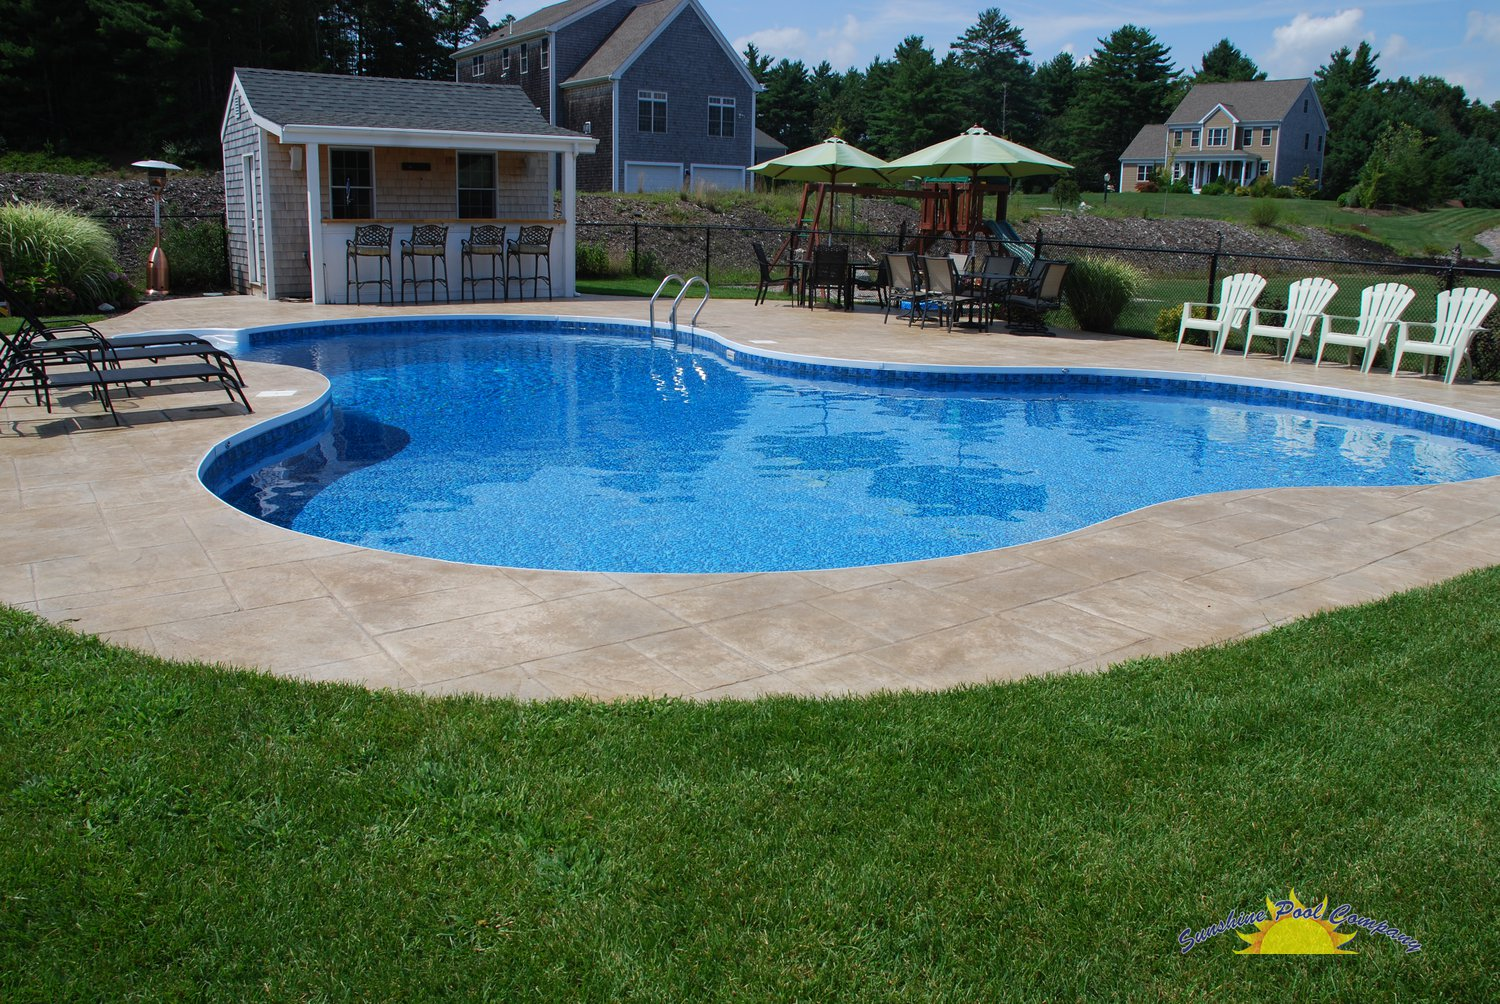 Pin by elizabeth wadman on future house stuff pinterest for Inground pool pics